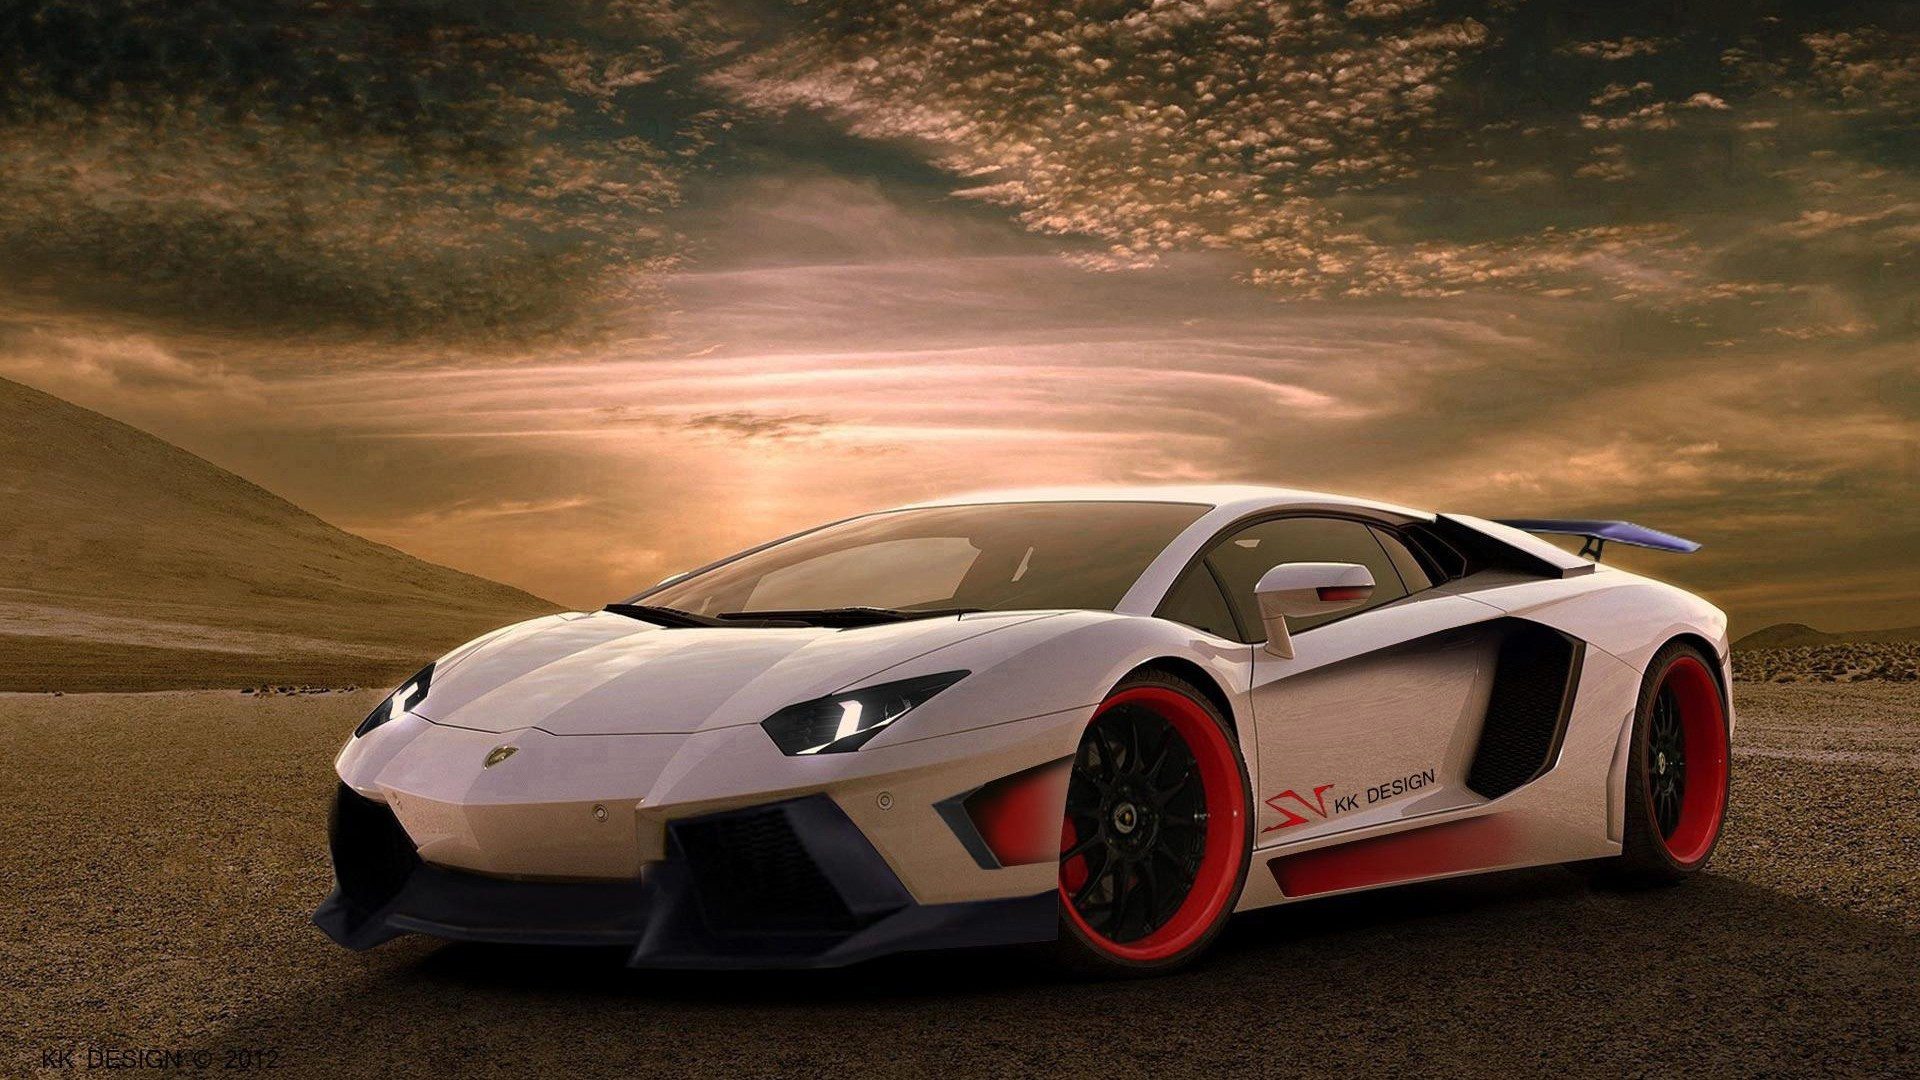 Download Wallpaper Mac Lamborghini - Lamborghini-Aventador-SV-HD-Desktop  Image_477454.jpg